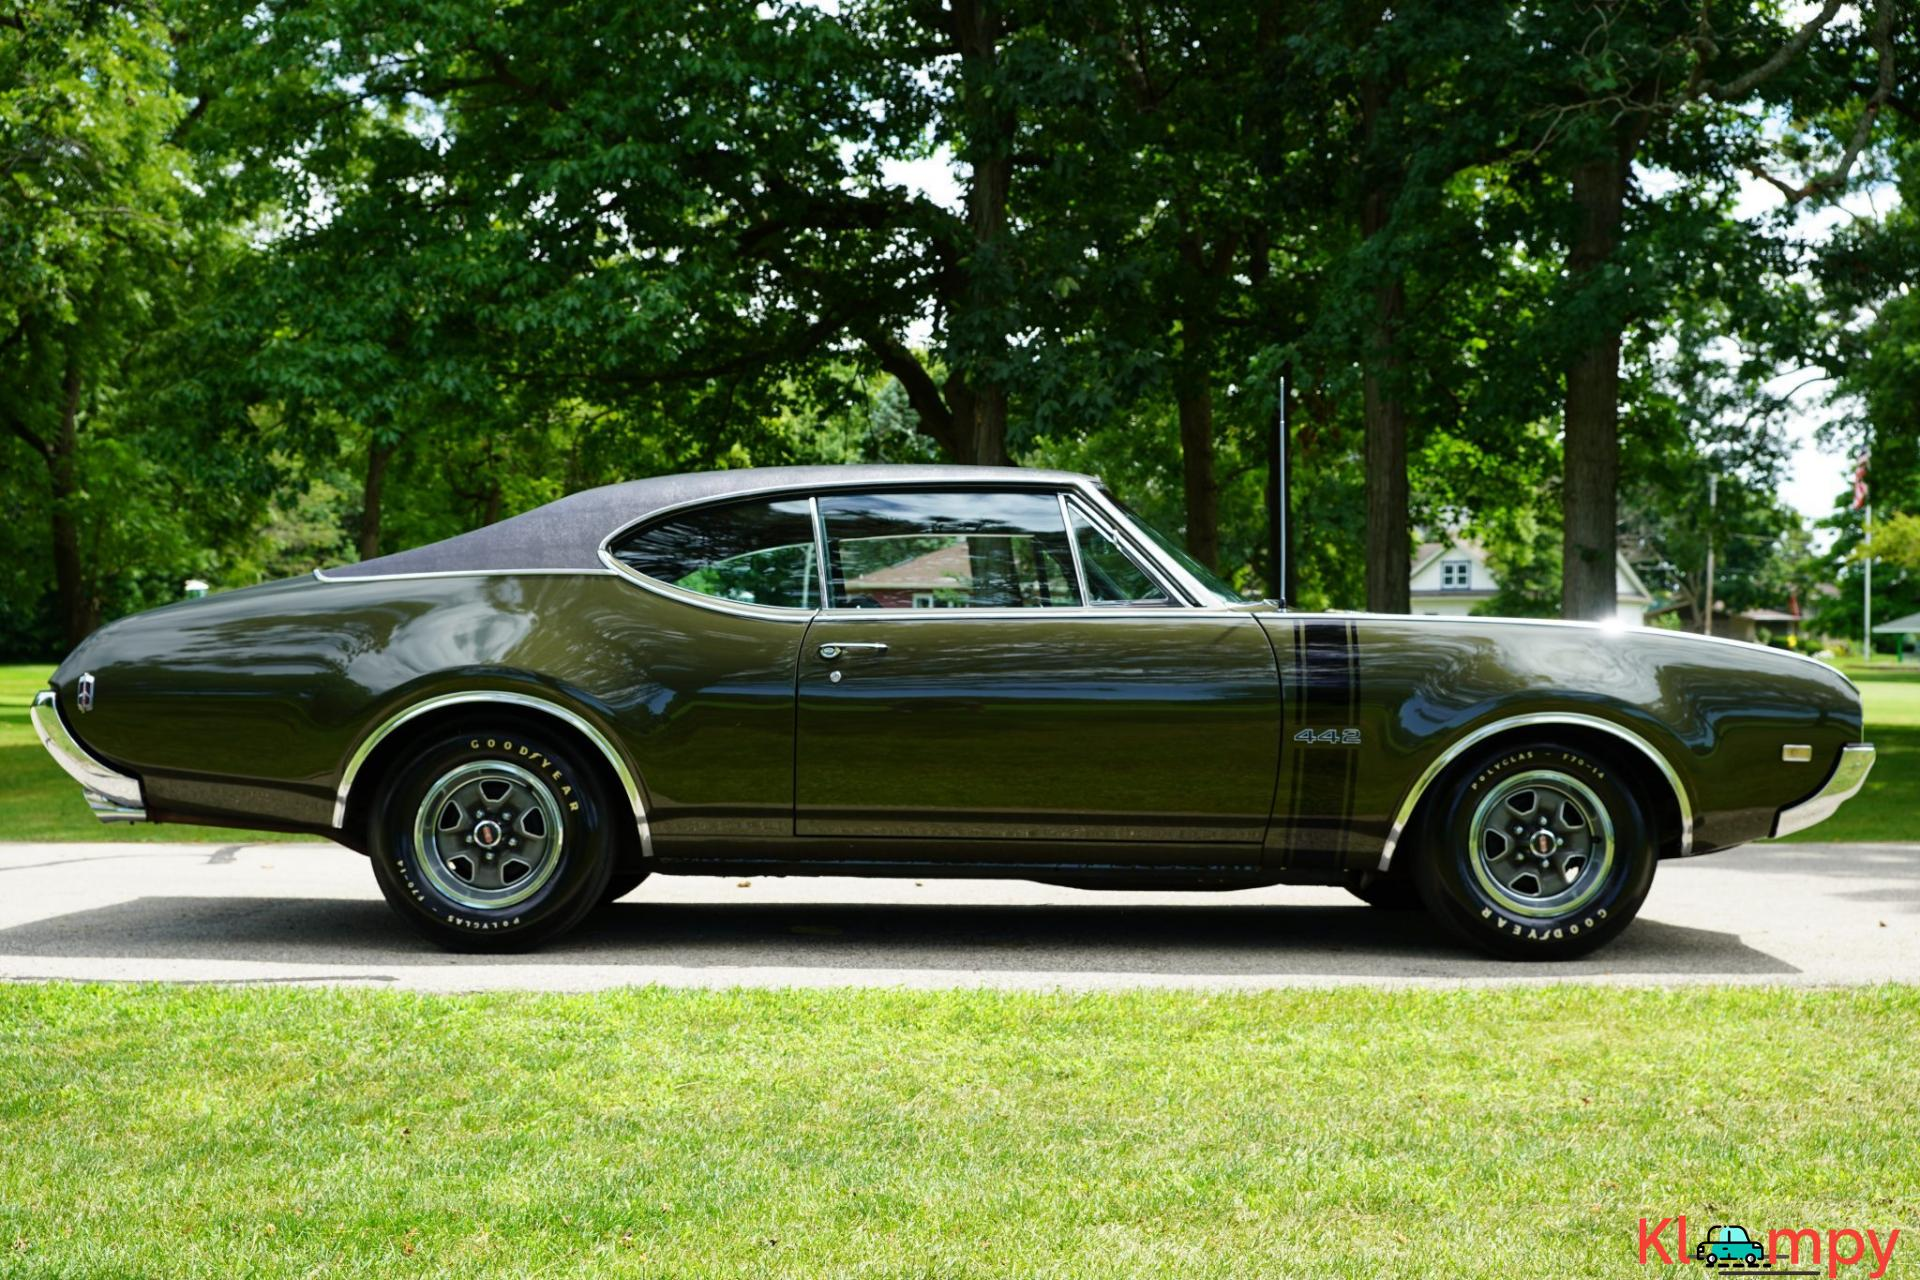 1968 Oldsmobile 442 Holiday Coupe Jade Gold - 4/28